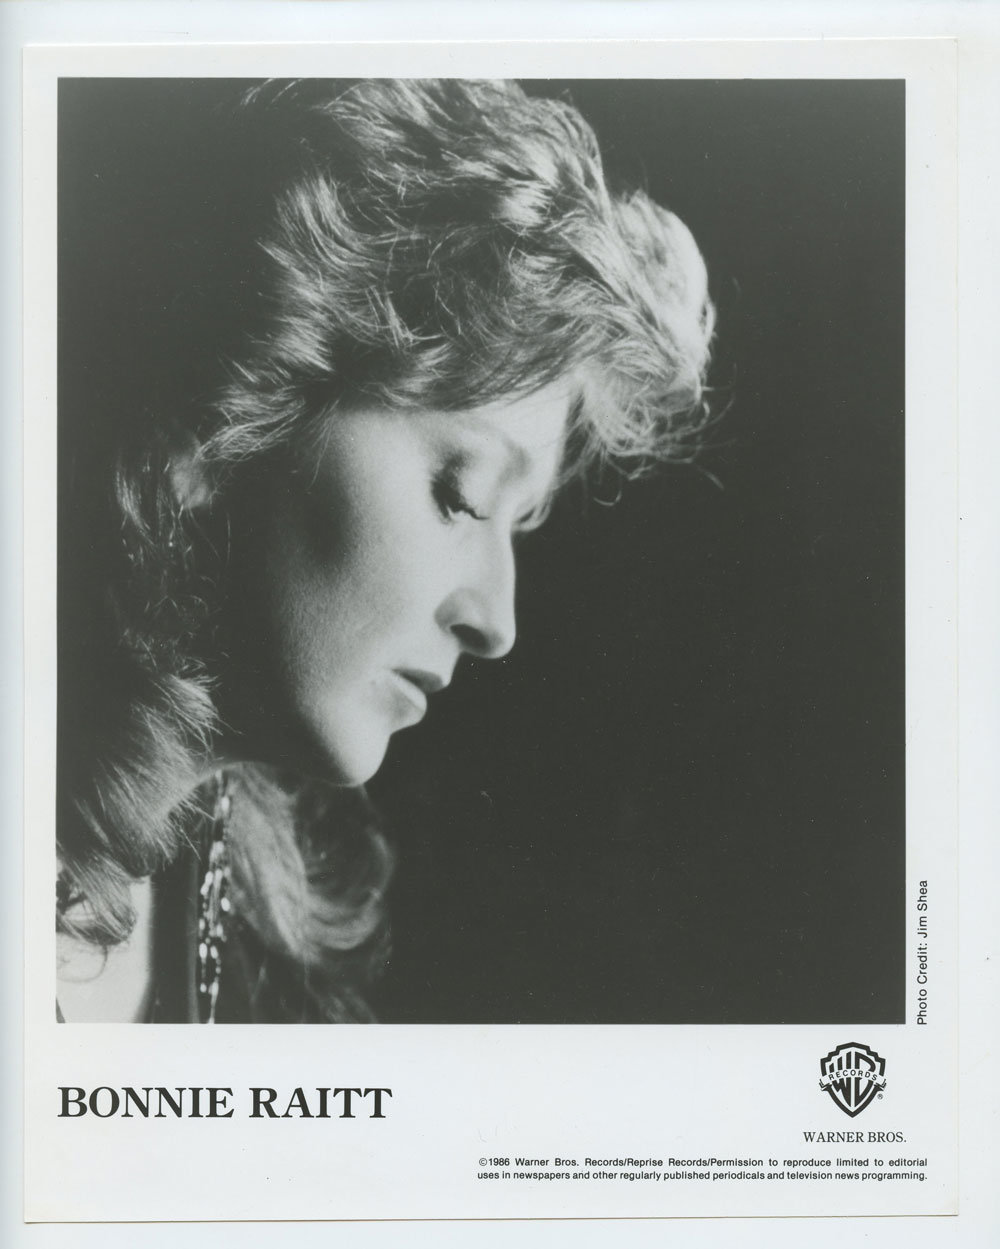 Bonnie Raitt Photo 1986 Publicity Promo Warner Bros Records